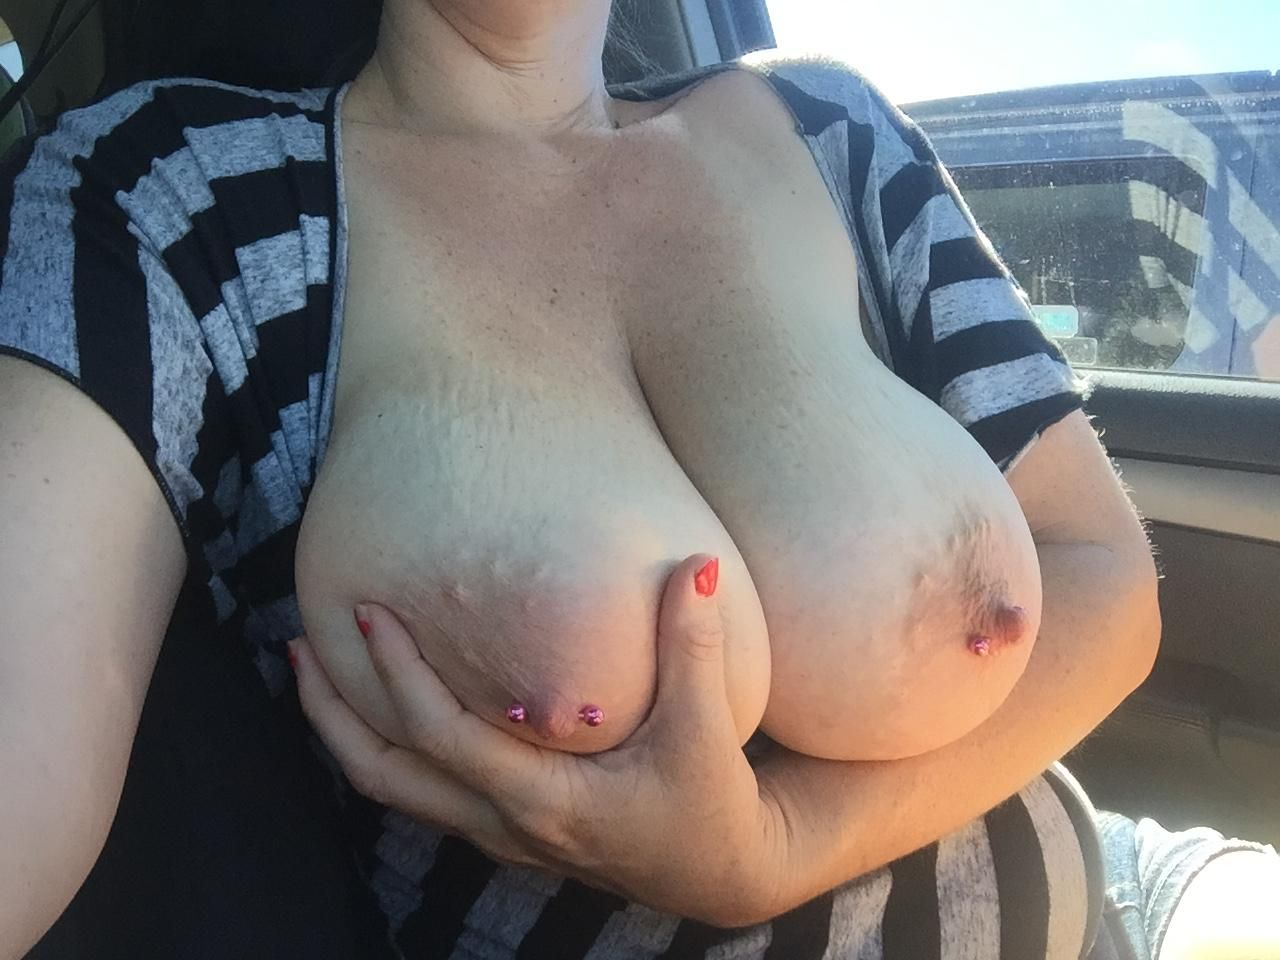 [Busty Amateurs] In the car!